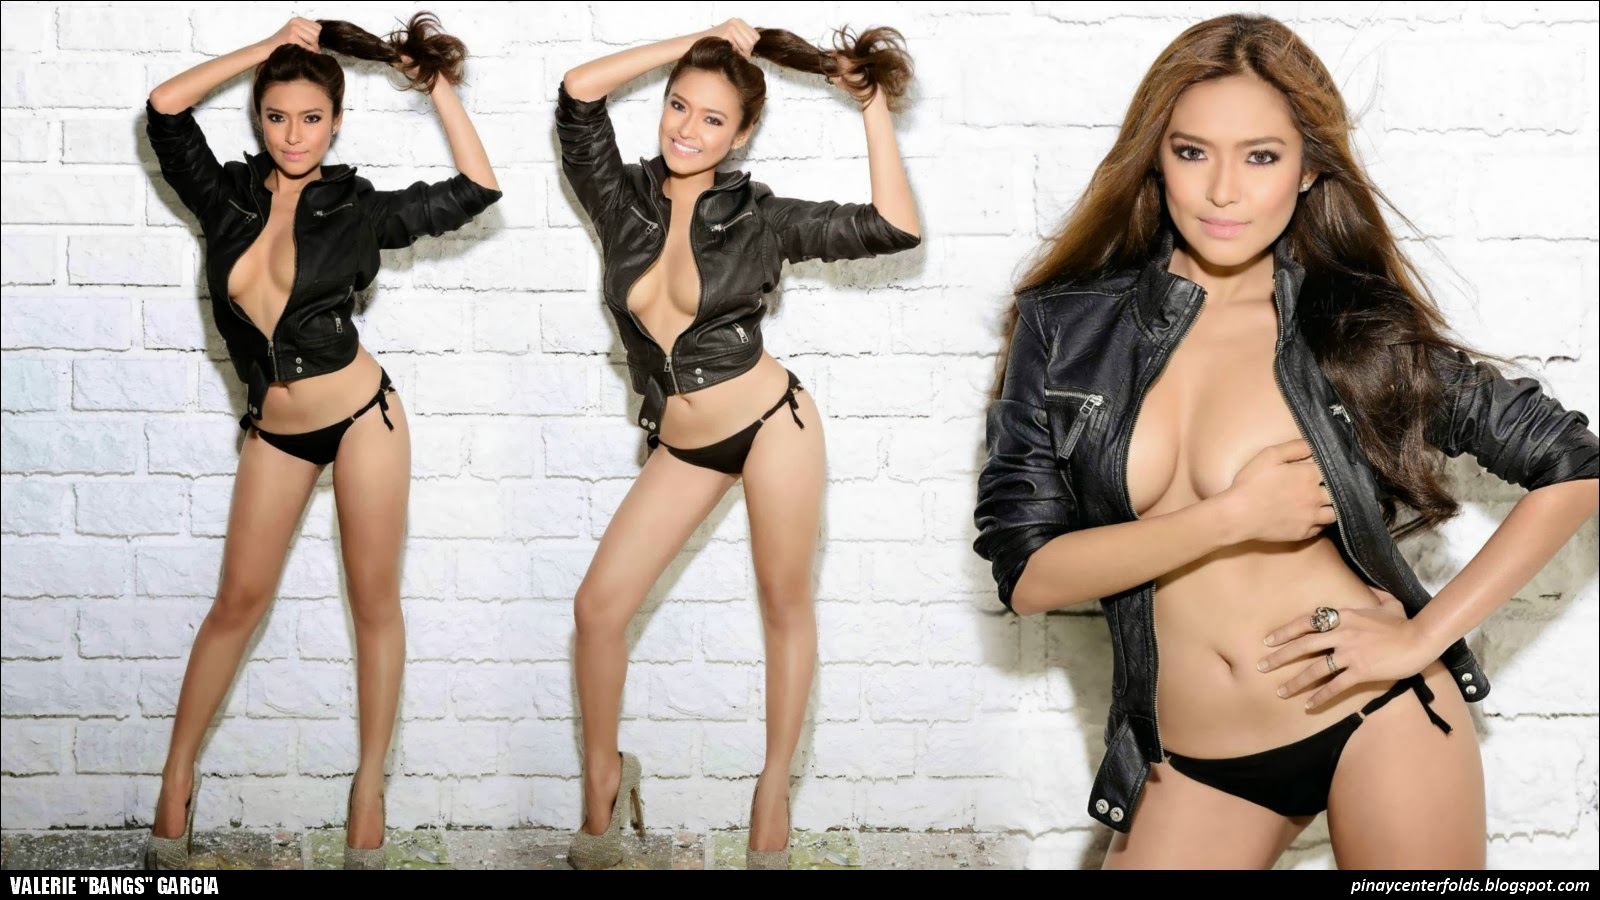 Valerie Bangs Garcia In FHM 2013 1